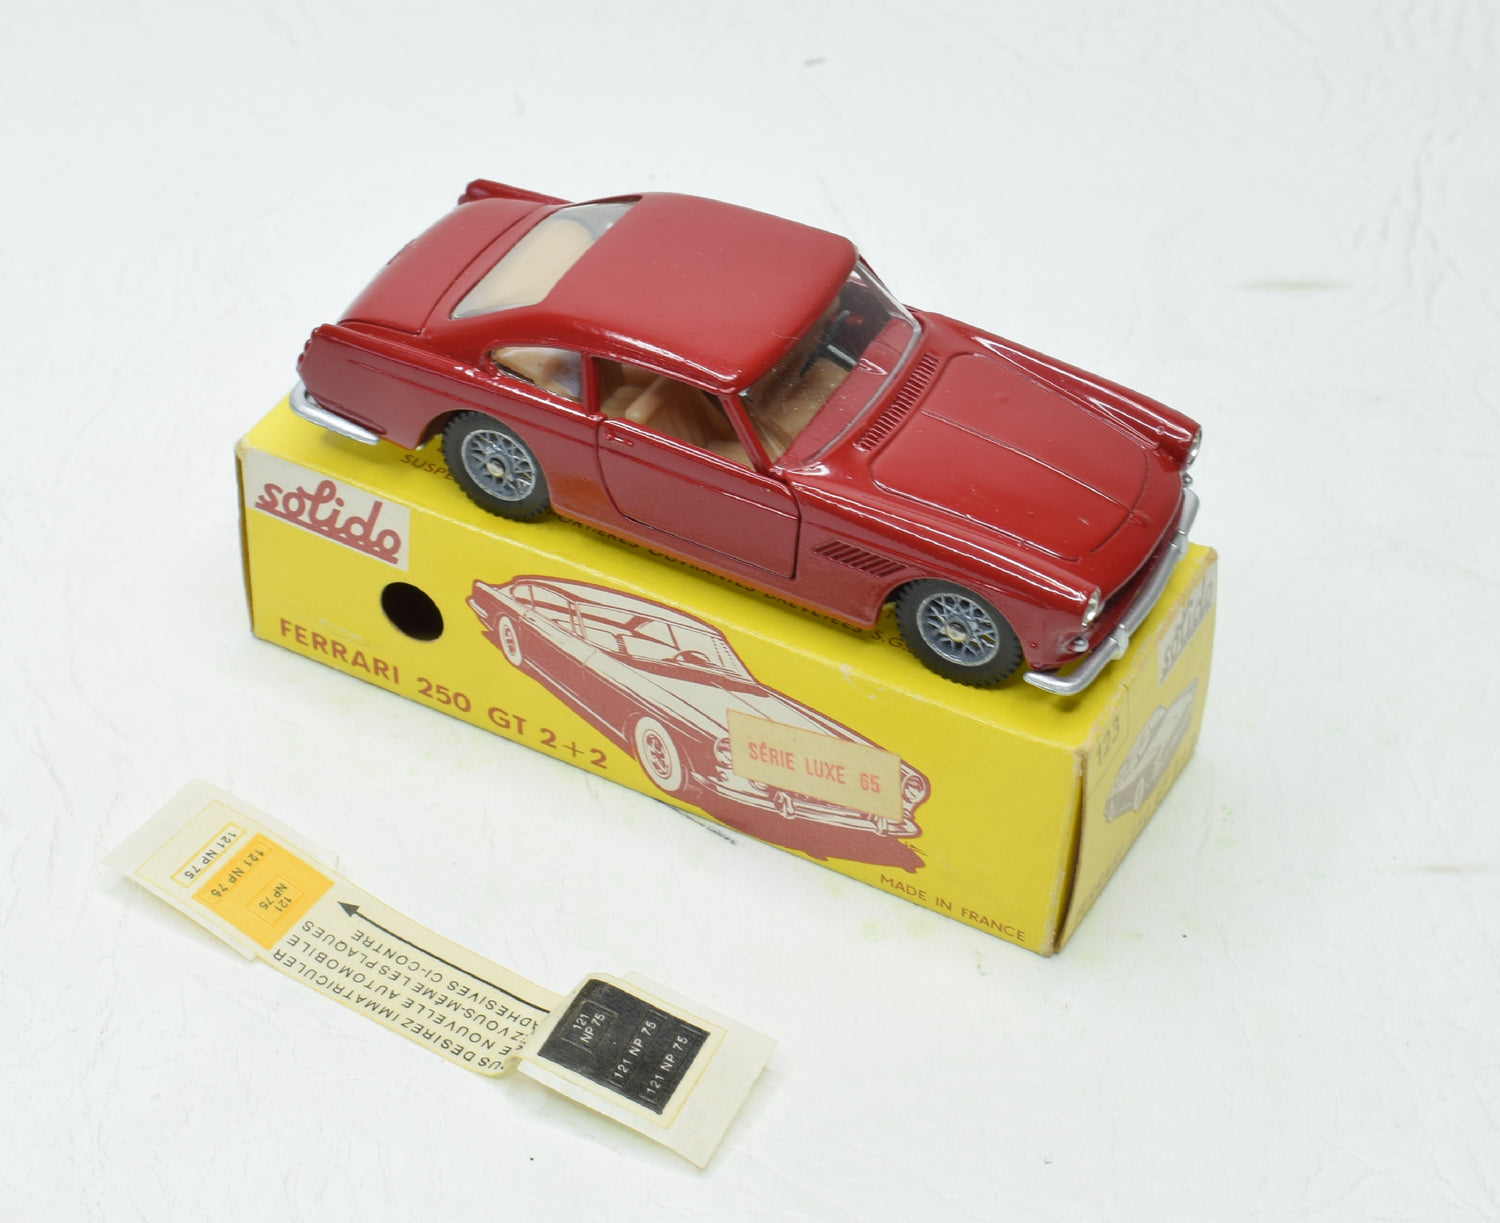 Solido 123 Ferrari 250 GT 2+2 Virtually Mint/Boxed